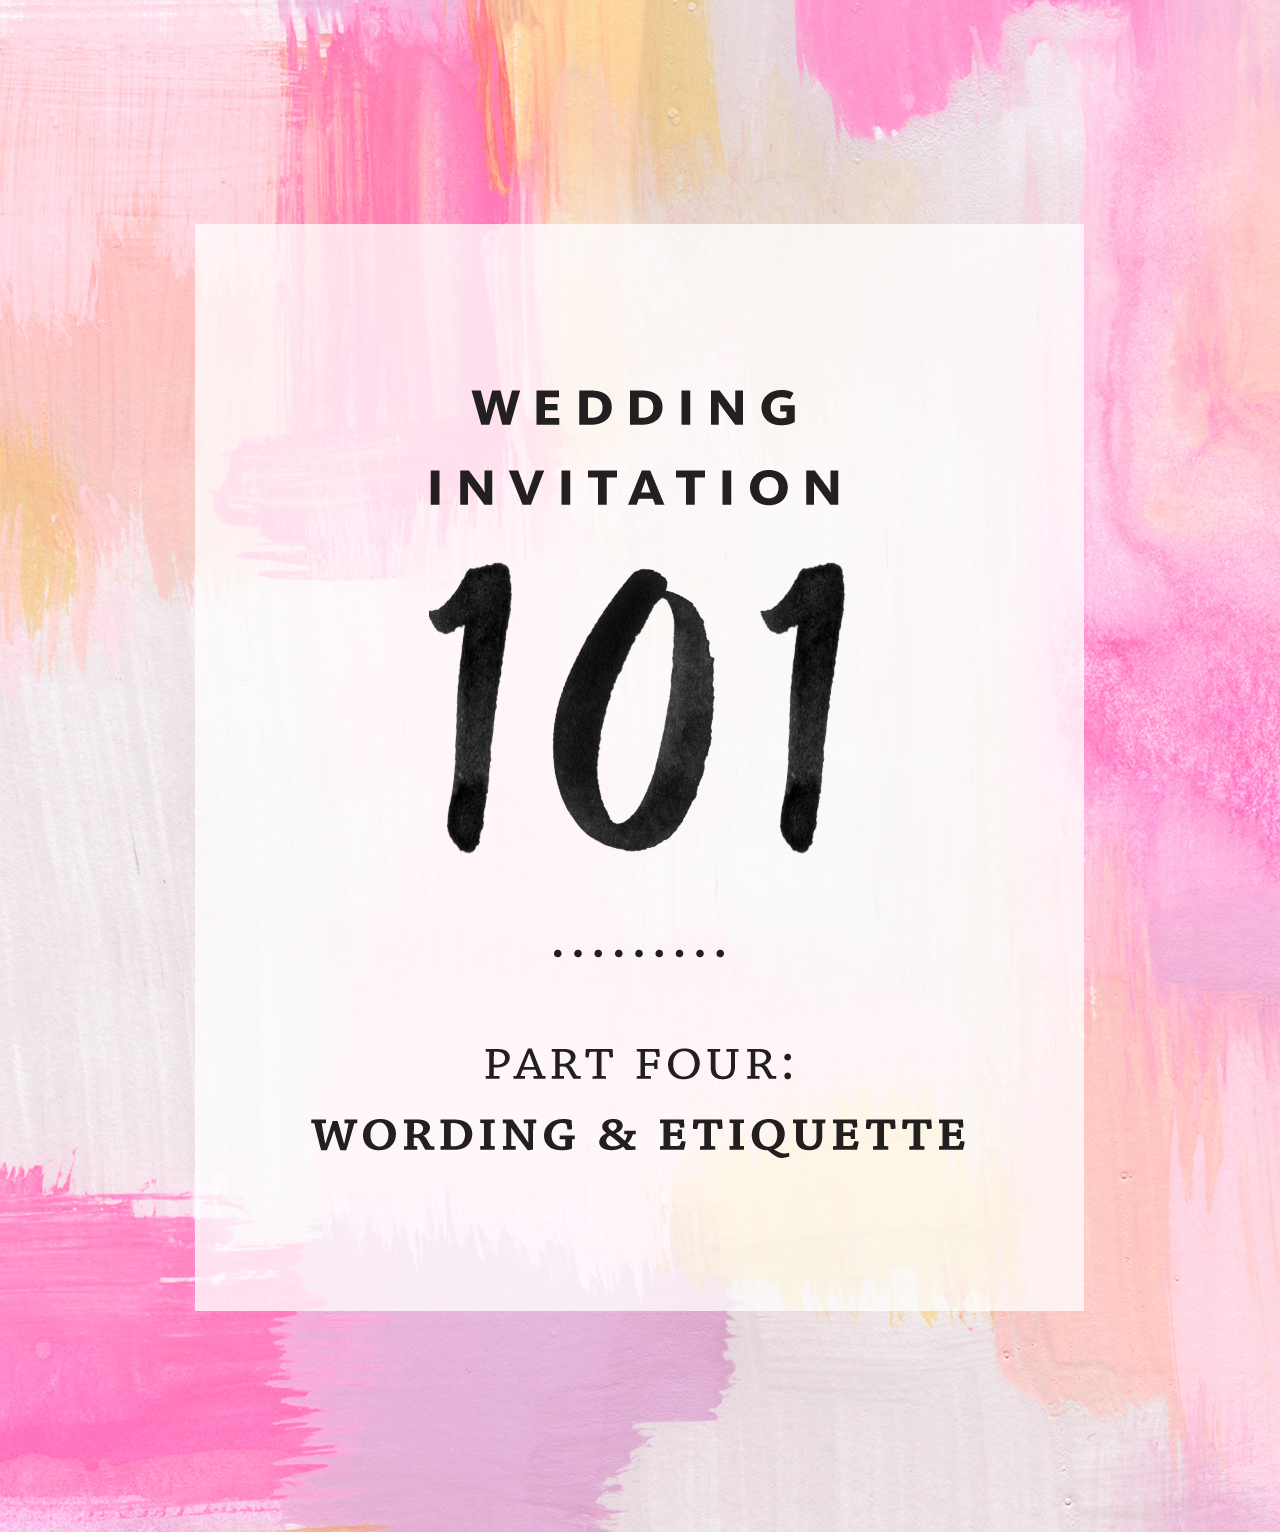 Wedding invitation wording and etiquette wedding invitation 101 part 4 wedding invitation wording and etiquette filmwisefo